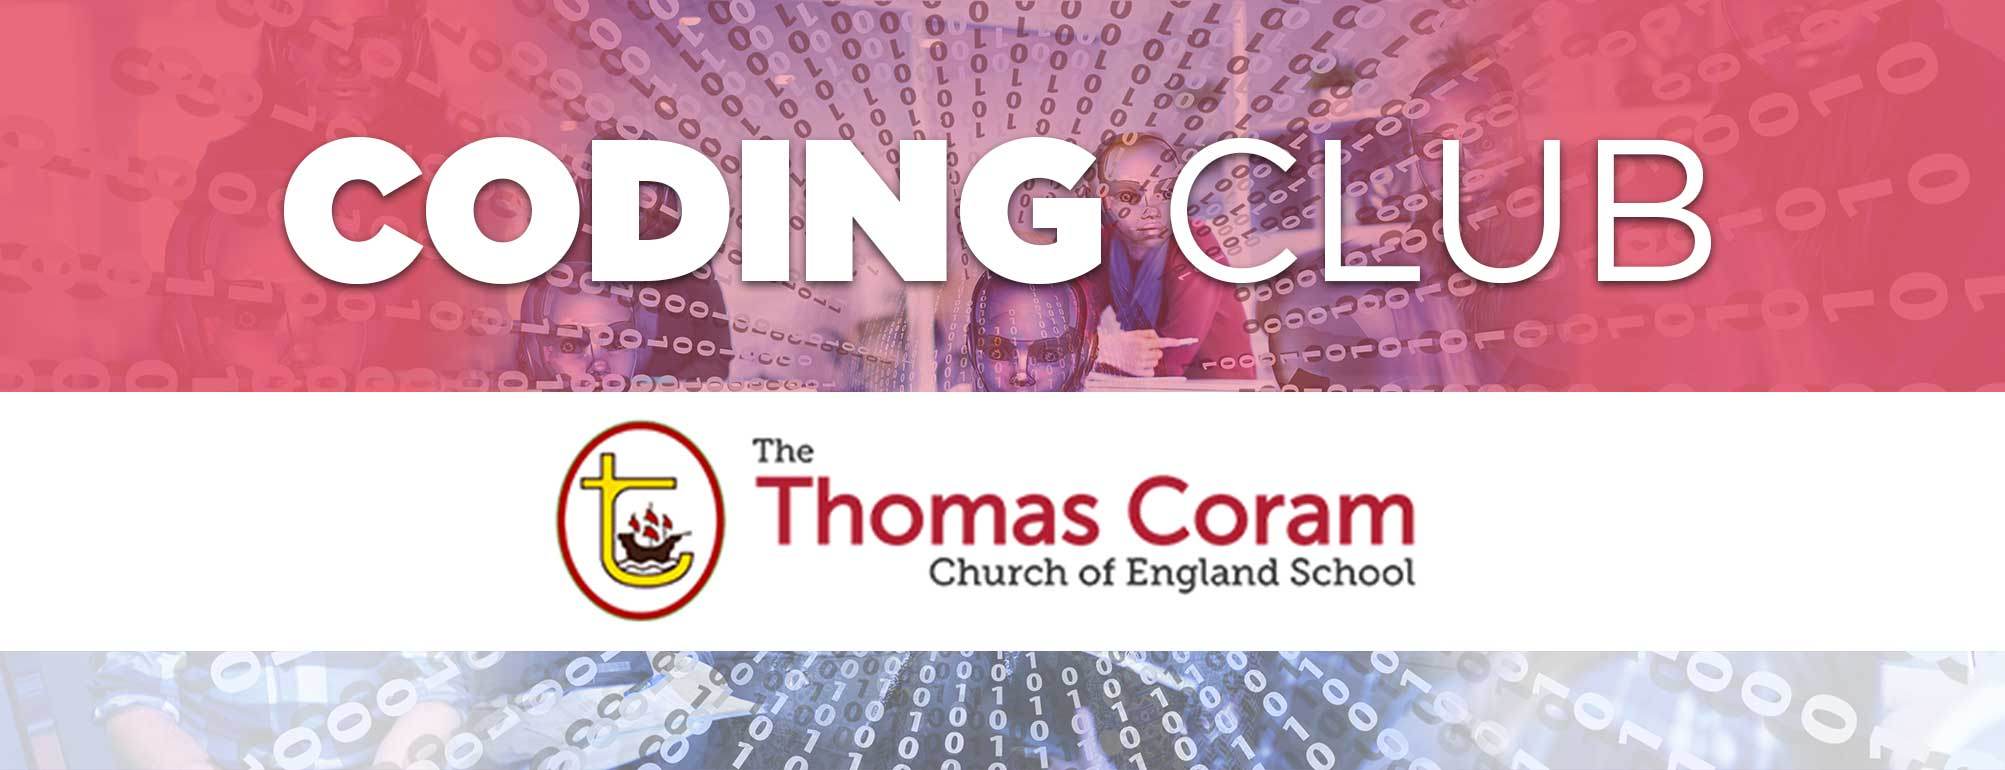 Thursday Coding Club - Thomas Coram - September to December 2019